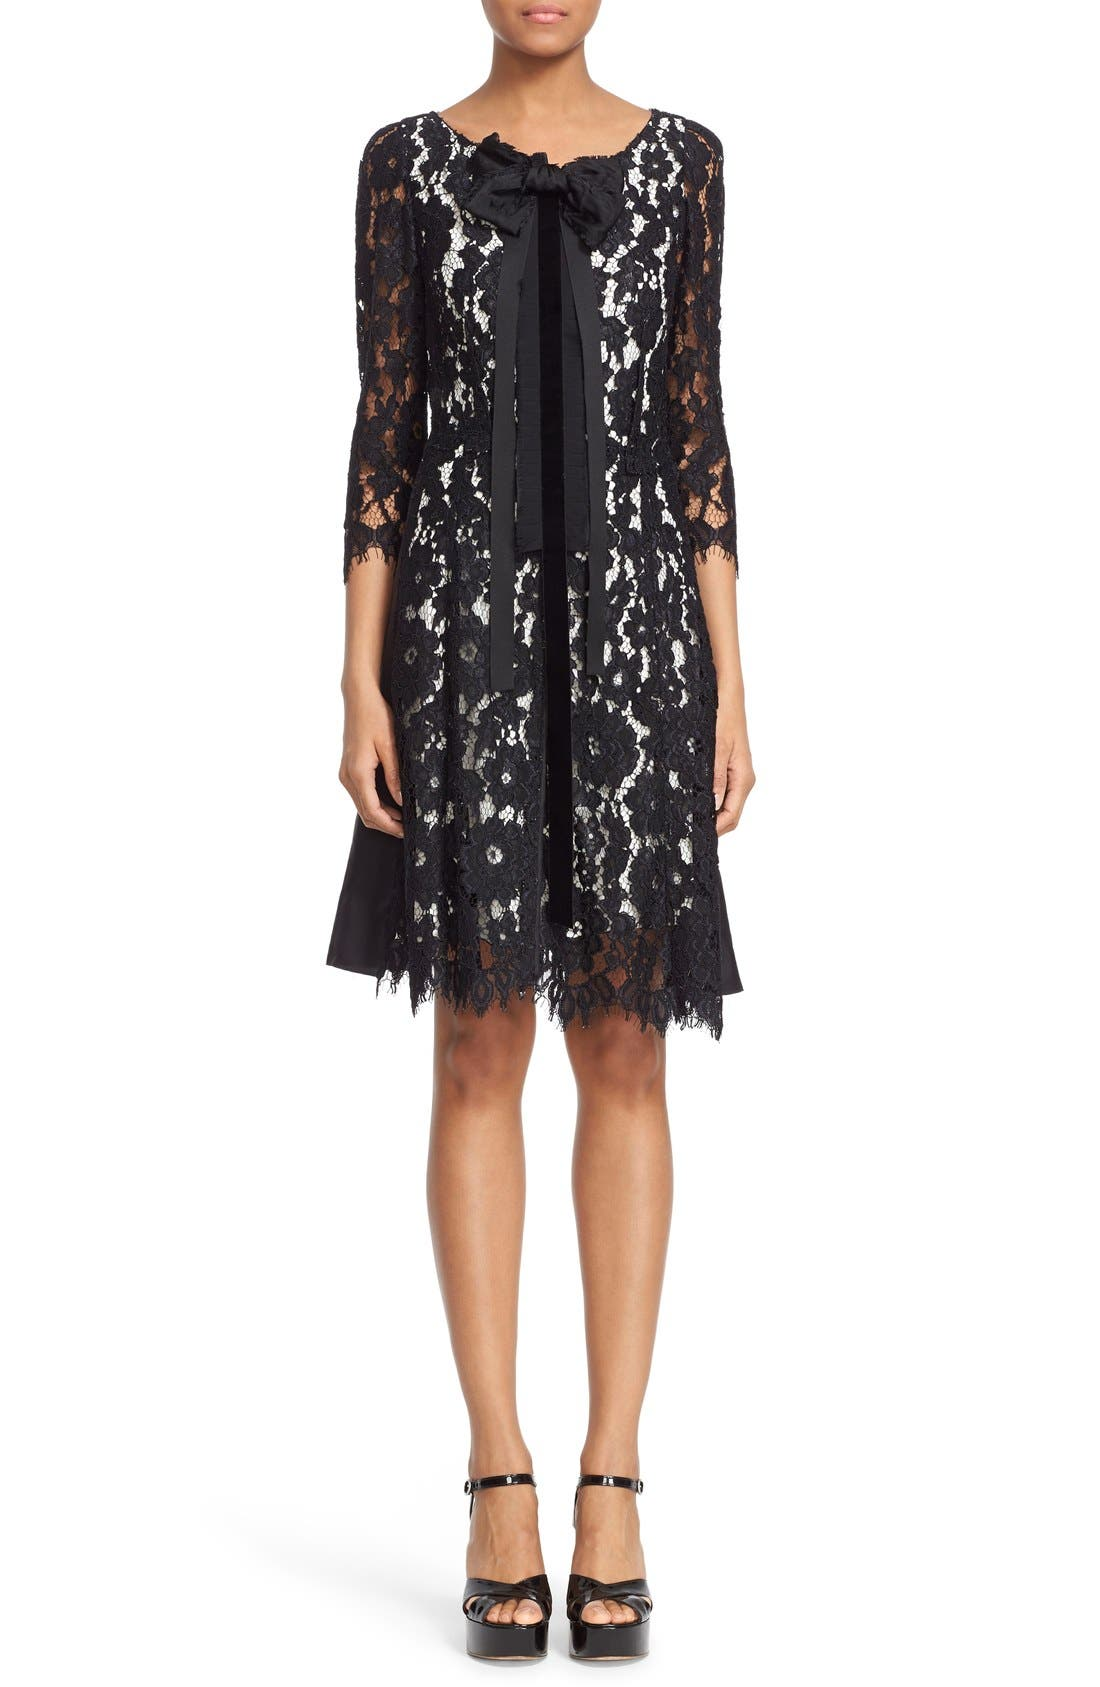 Alternate Image 1 Selected - MARC JACOBS Bow Detail Lace Shift Dress